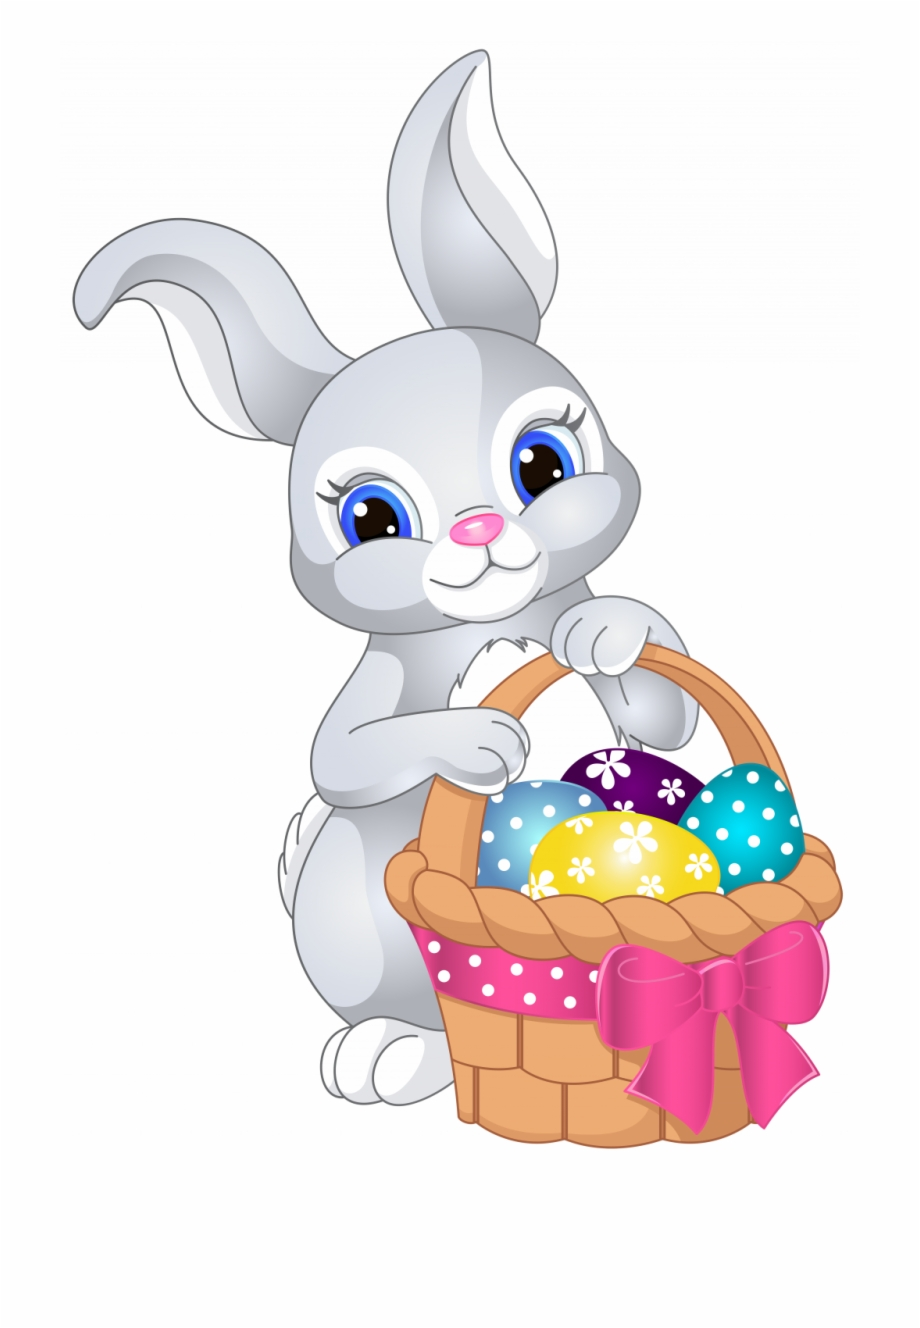 Free printable clipart for easter jpg transparent stock Free Printable Easter Clipart - Cute Cartoon Easter Bunny ... jpg transparent stock